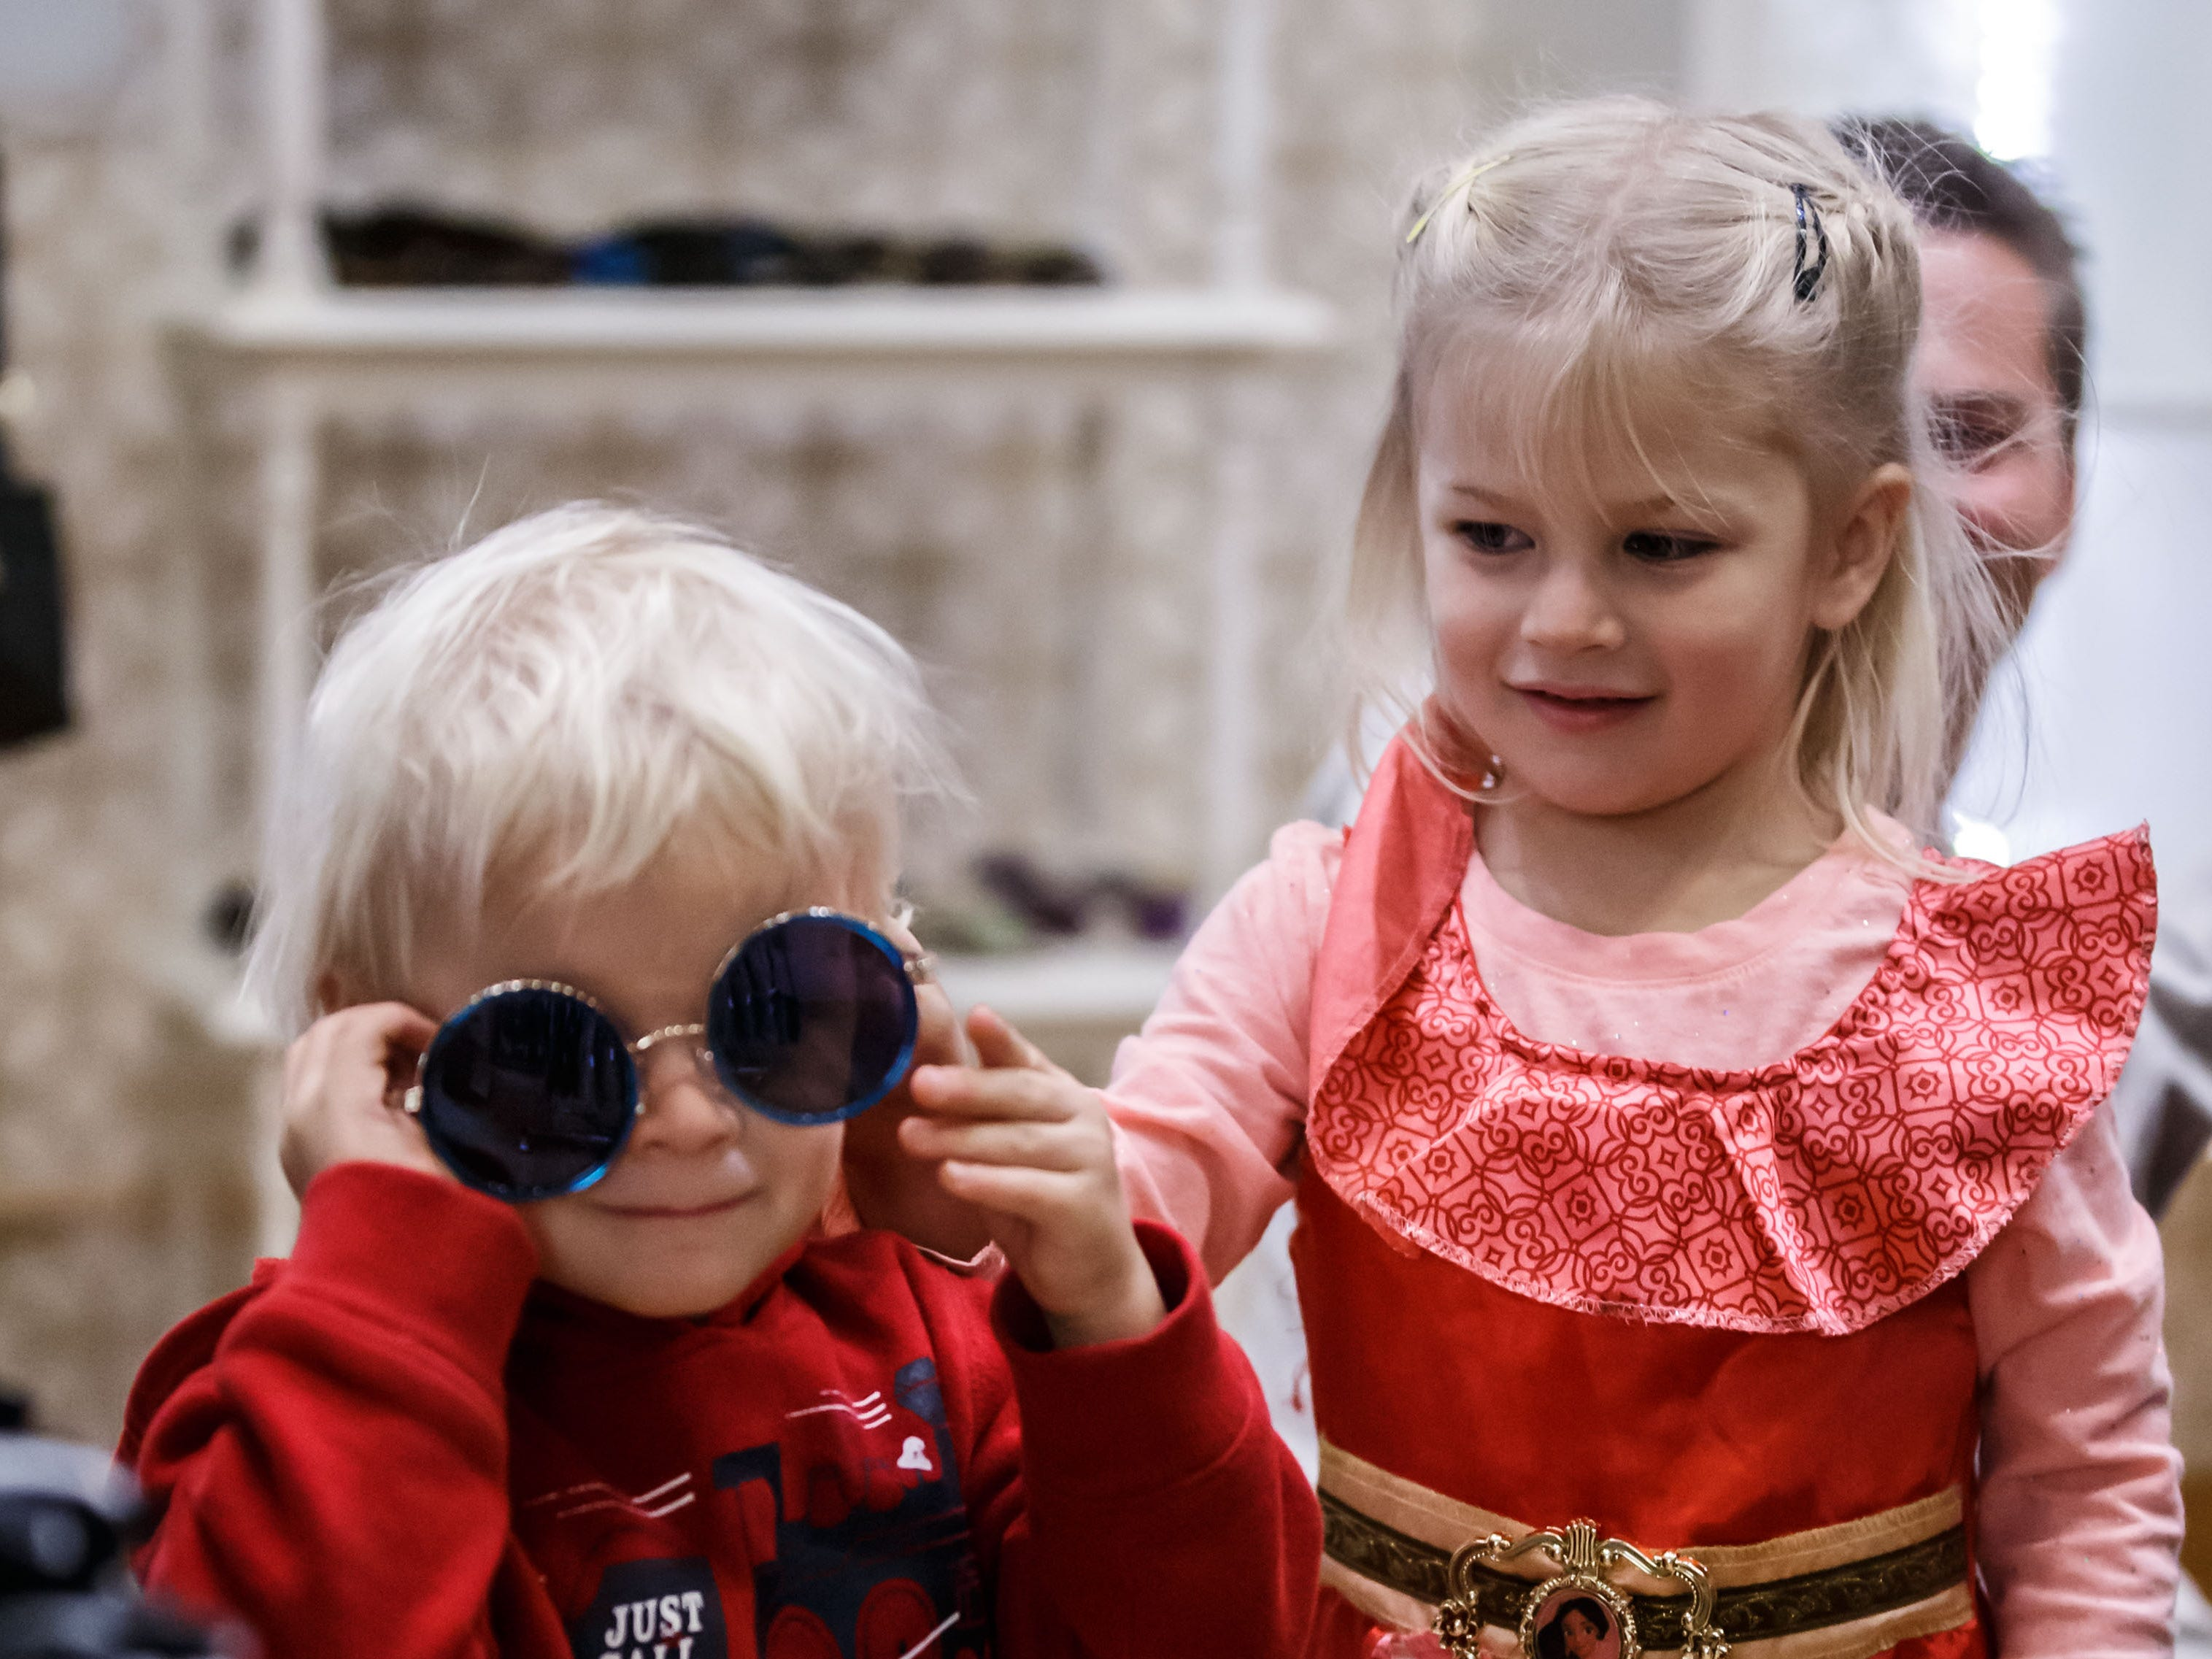 Two-year-old Samuel Stewart of Watertown gets a little help from sister Scarlett, 4, while trying on sun glasses at Bangles & Bags in Oconomowoc during the annual Fall Gallery Night event on Friday, Nov. 2, 2018.